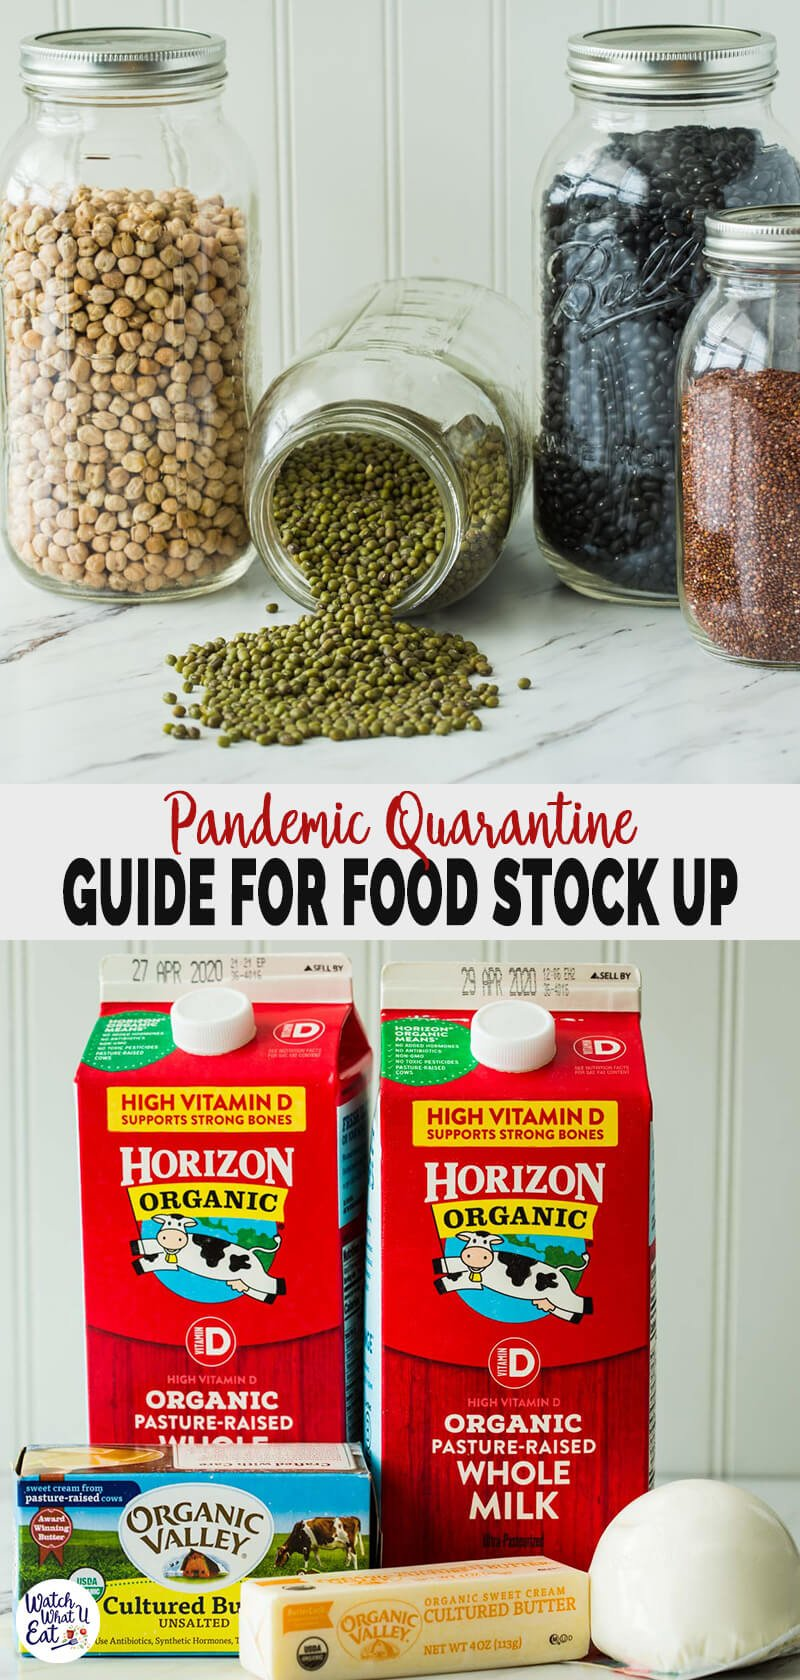 How To Stock Up Healthy Food for Quarantine During Pandemic - here are some practical tips or guide to stock up the pantry for quarantine period or coronavirus pandemic self-isolation.